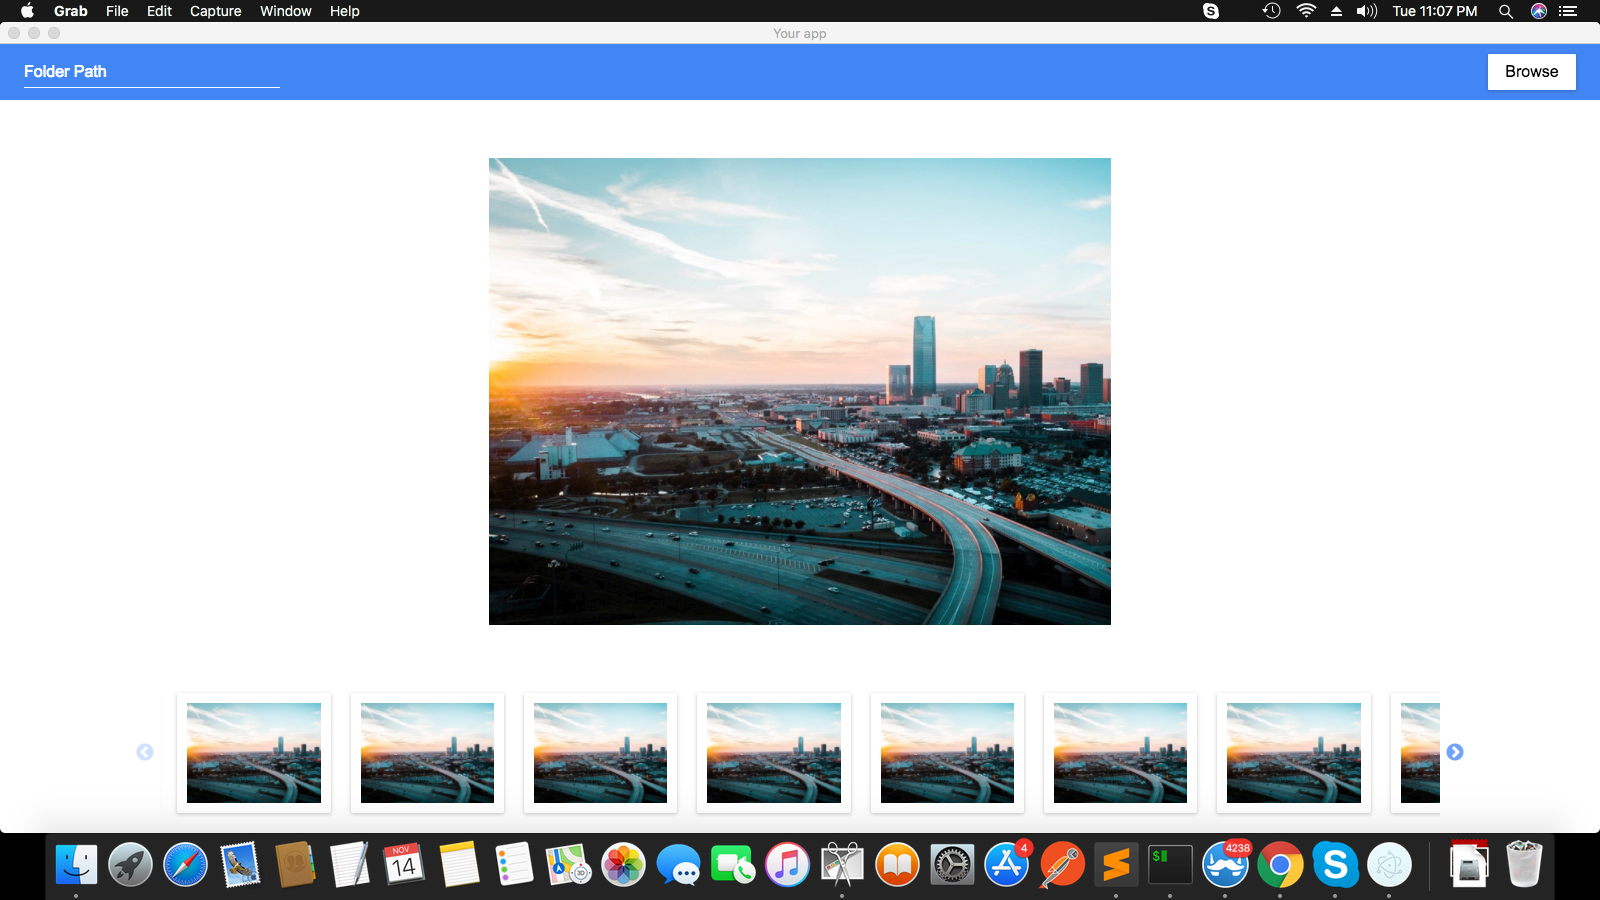 Get started with Electron & React by building a Photo Viewer